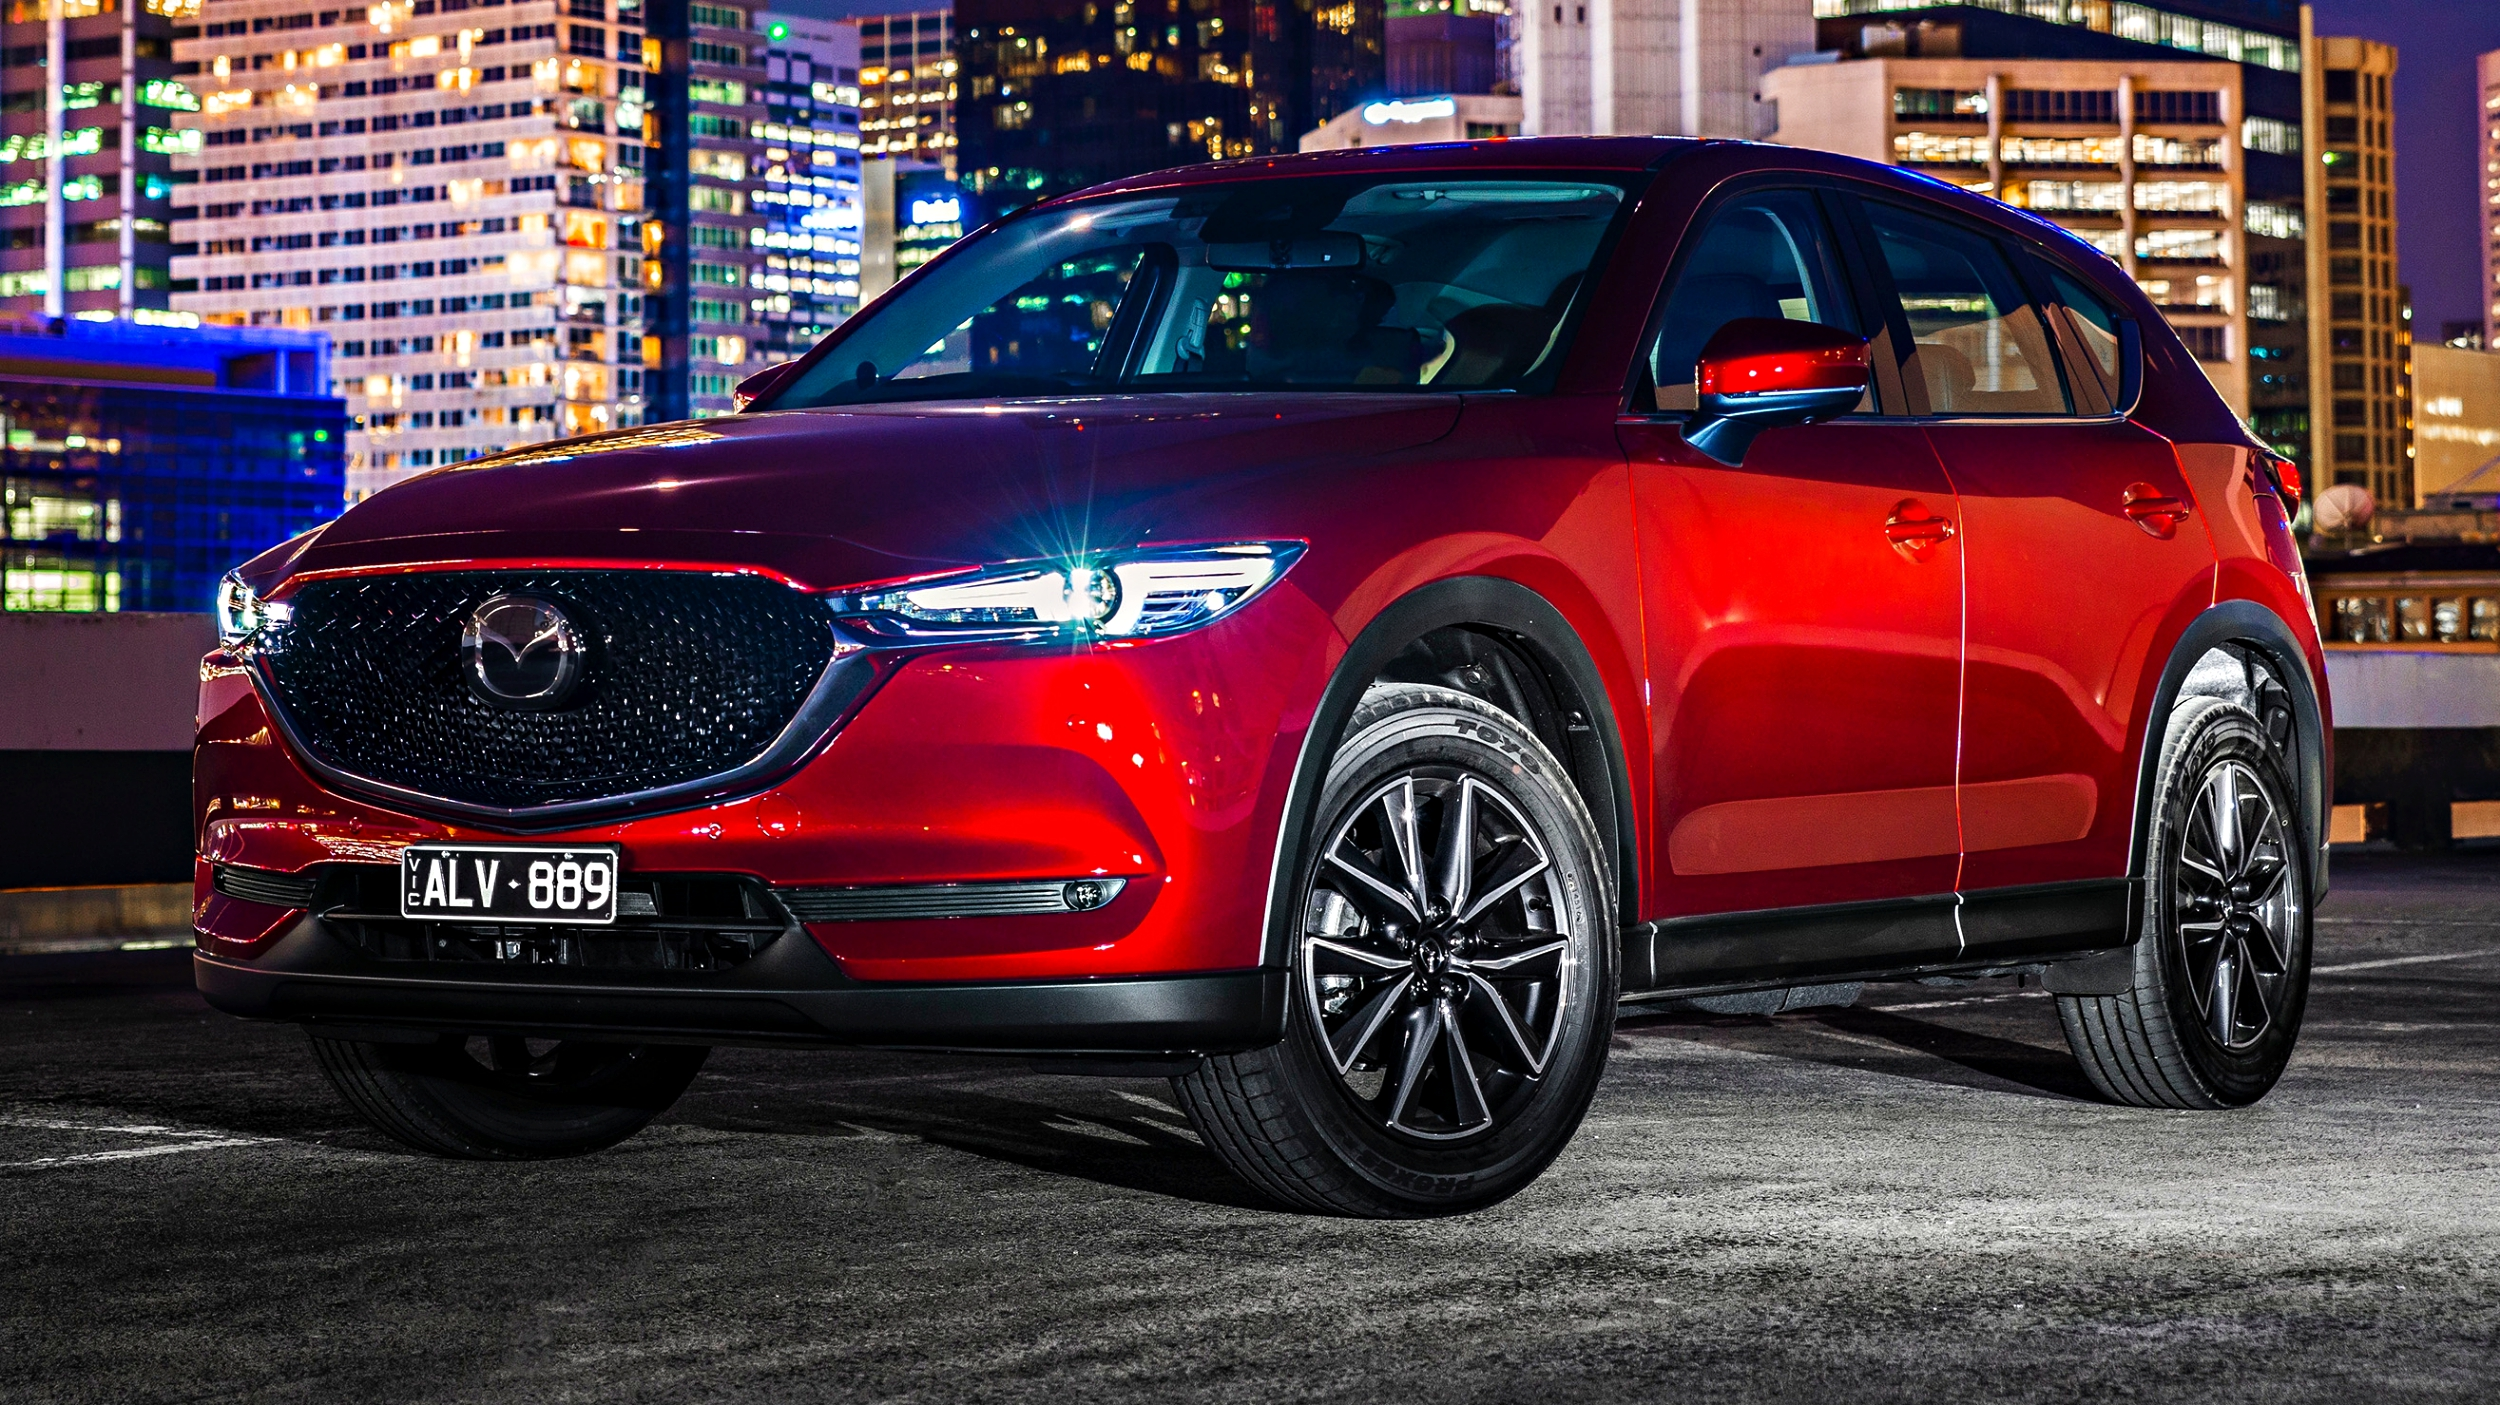 news mazda adds value tech to 2018 cx 5 range. Black Bedroom Furniture Sets. Home Design Ideas